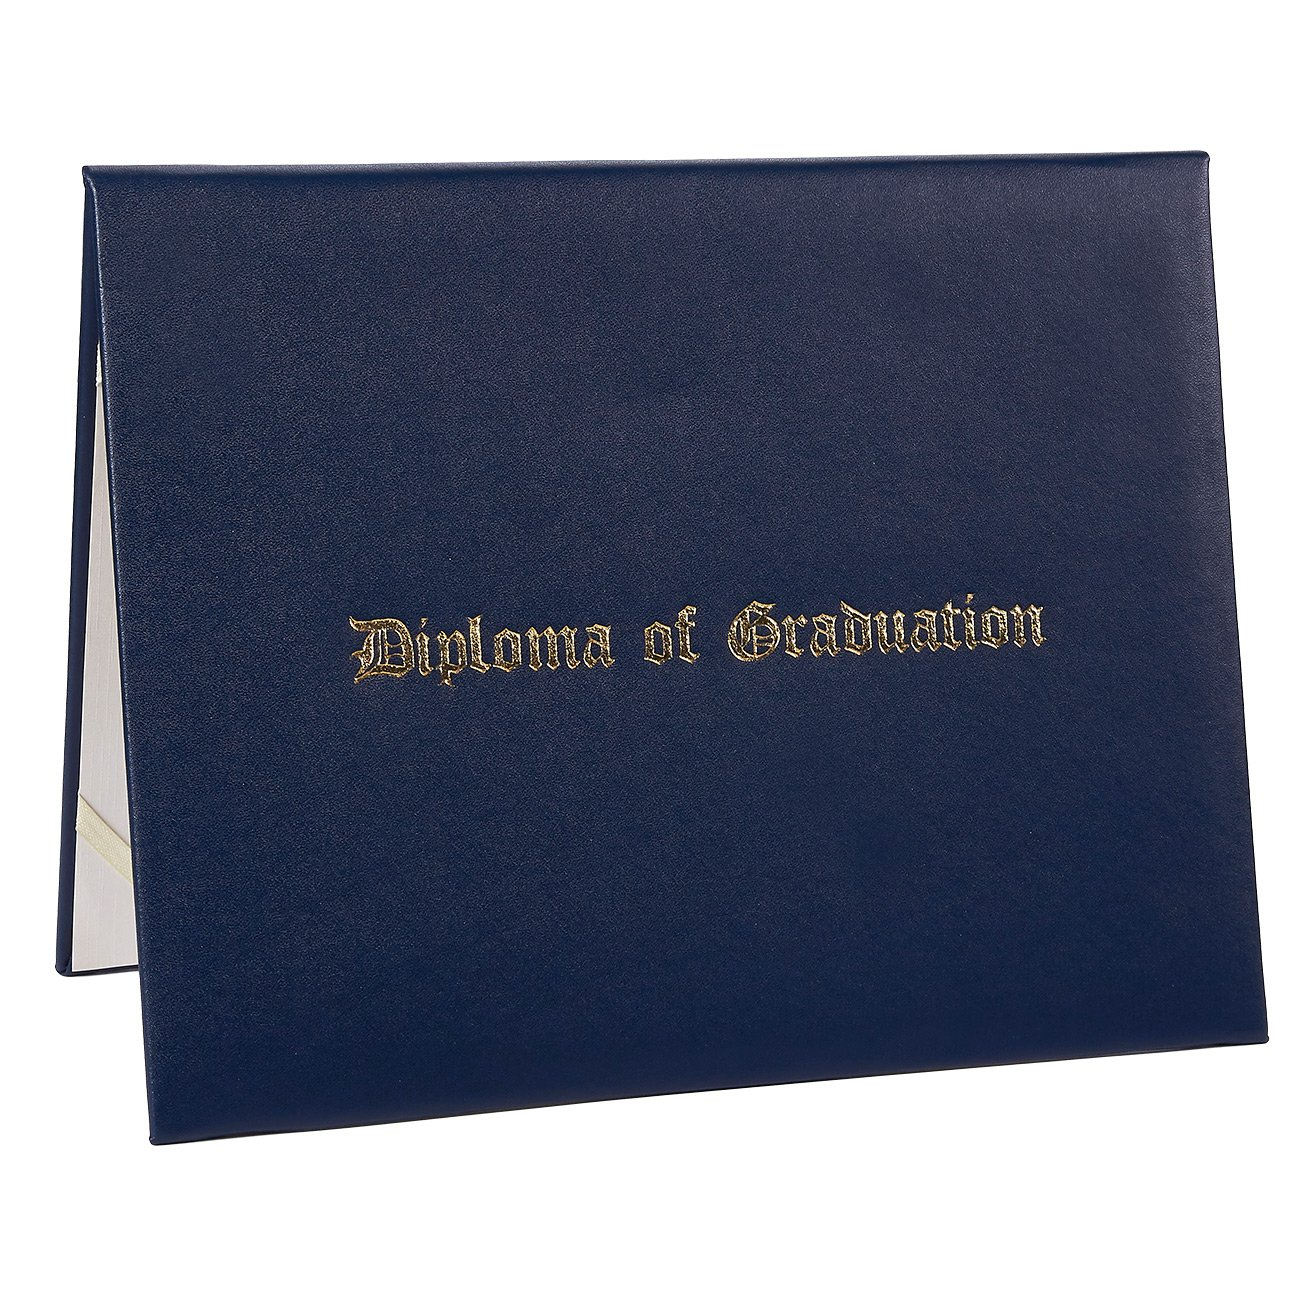 Diploma Cover - Certificate Holder with Diploma of Graduation Gold Foil Imprint, Document Cover for Letter-Sized Award Certificate, 4 Corner Ribbons, Navy Blue Faux Leather, 11.5 x 9 Inches